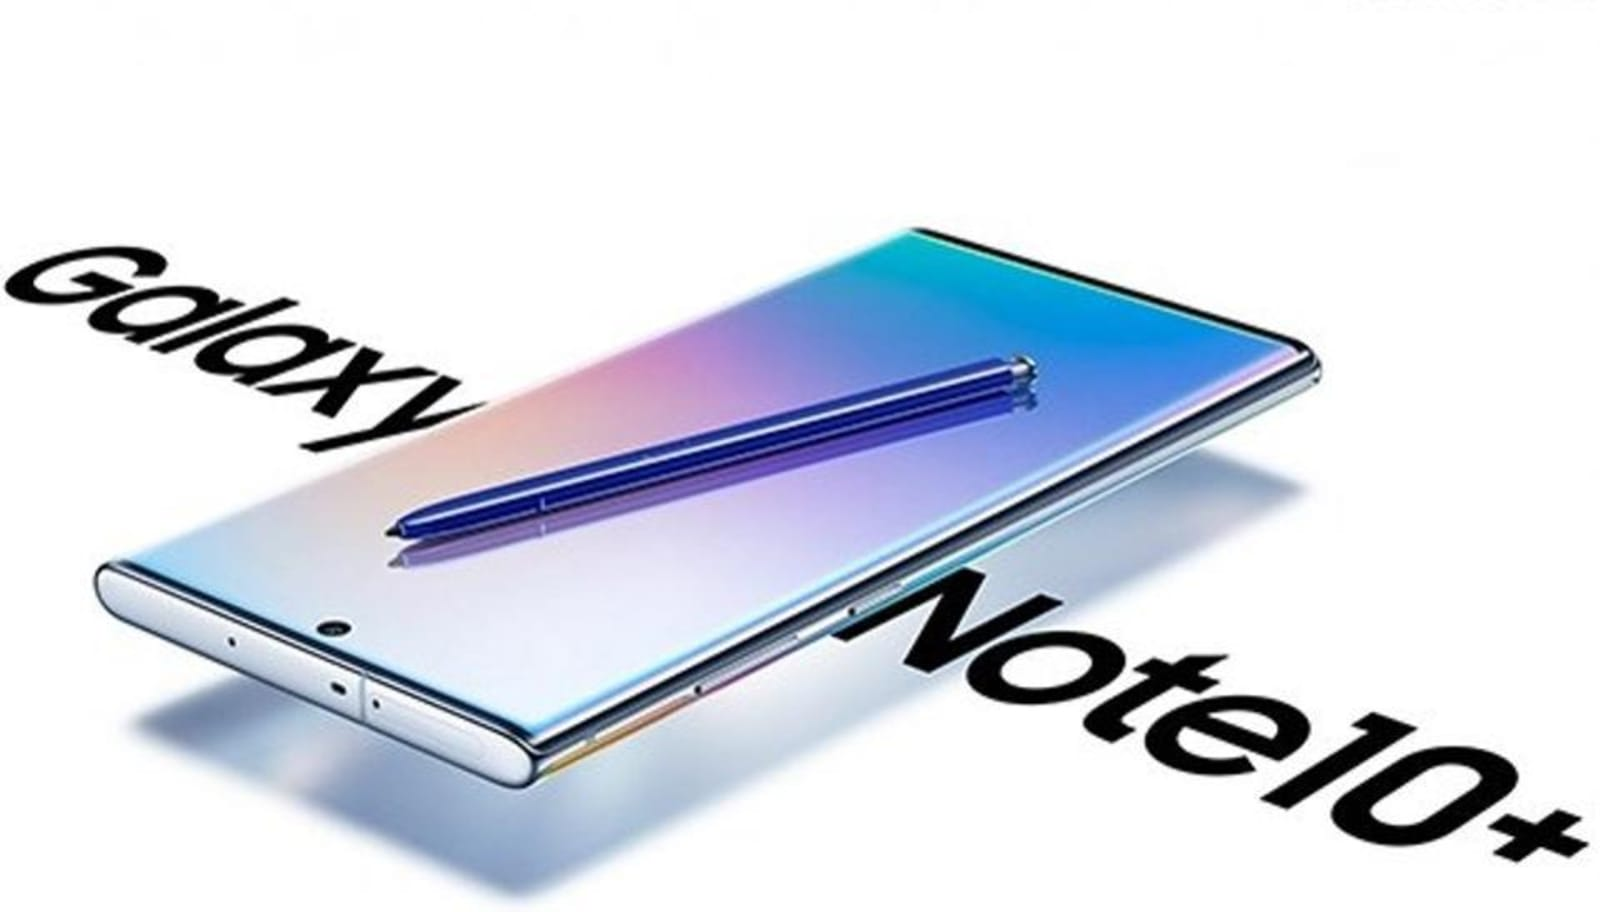 Samsung opens up Galaxy Note 10 reservations before official